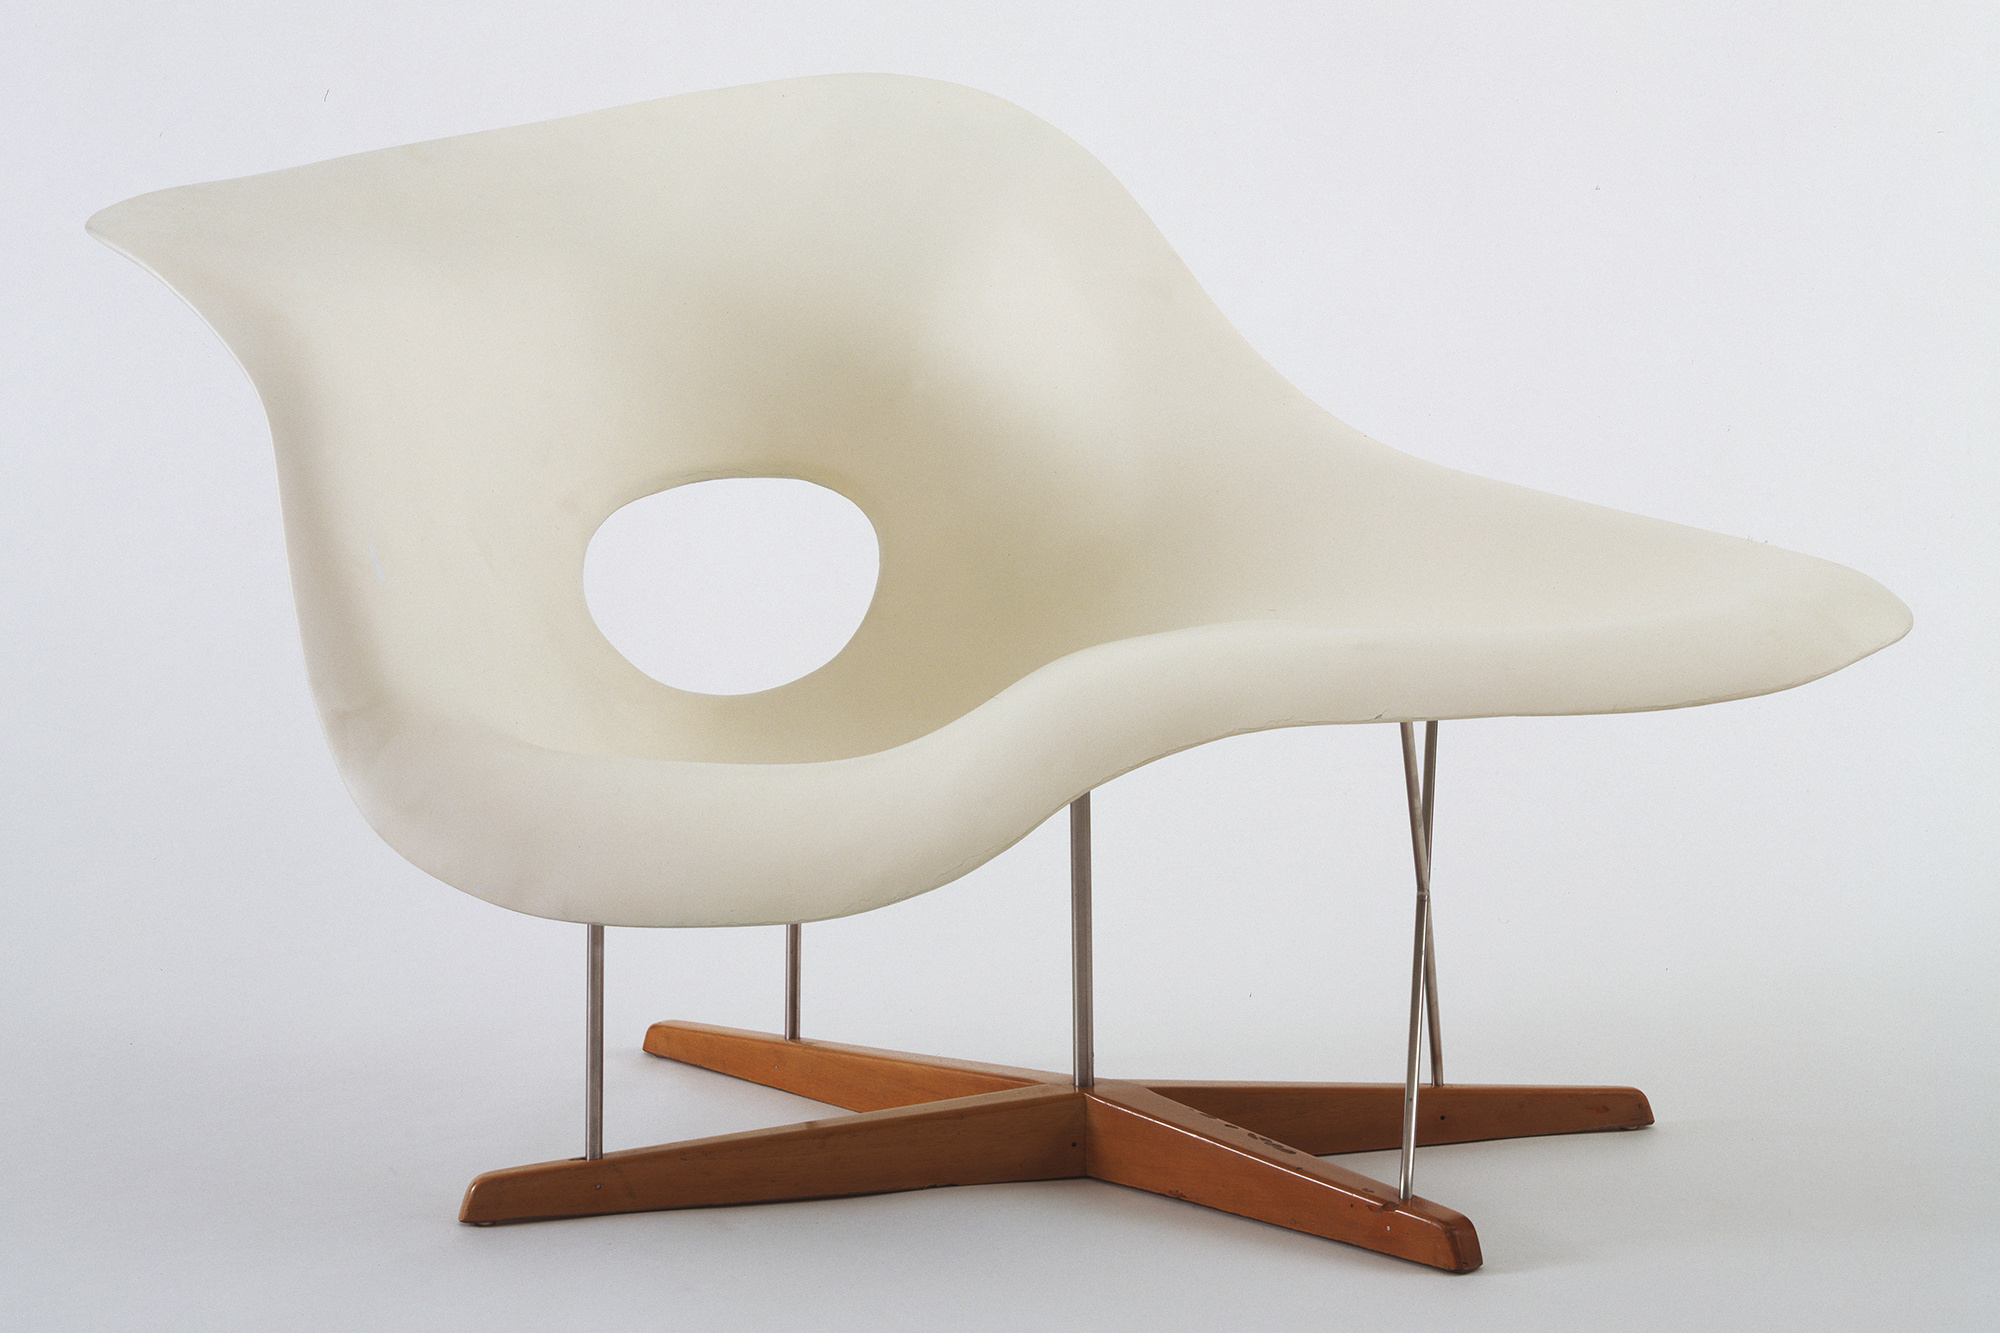 Charles Eames and Ray Eames. Full Scale Model of Chaise Longue (La Chaise). 1948. Hard rubber foam, plastic, wood, and metal, 32 1/2 × 59 × 24 1/4″ (82.5 × 149.8 × 87 cm). The Museum of Modern Art. Gift of the designer